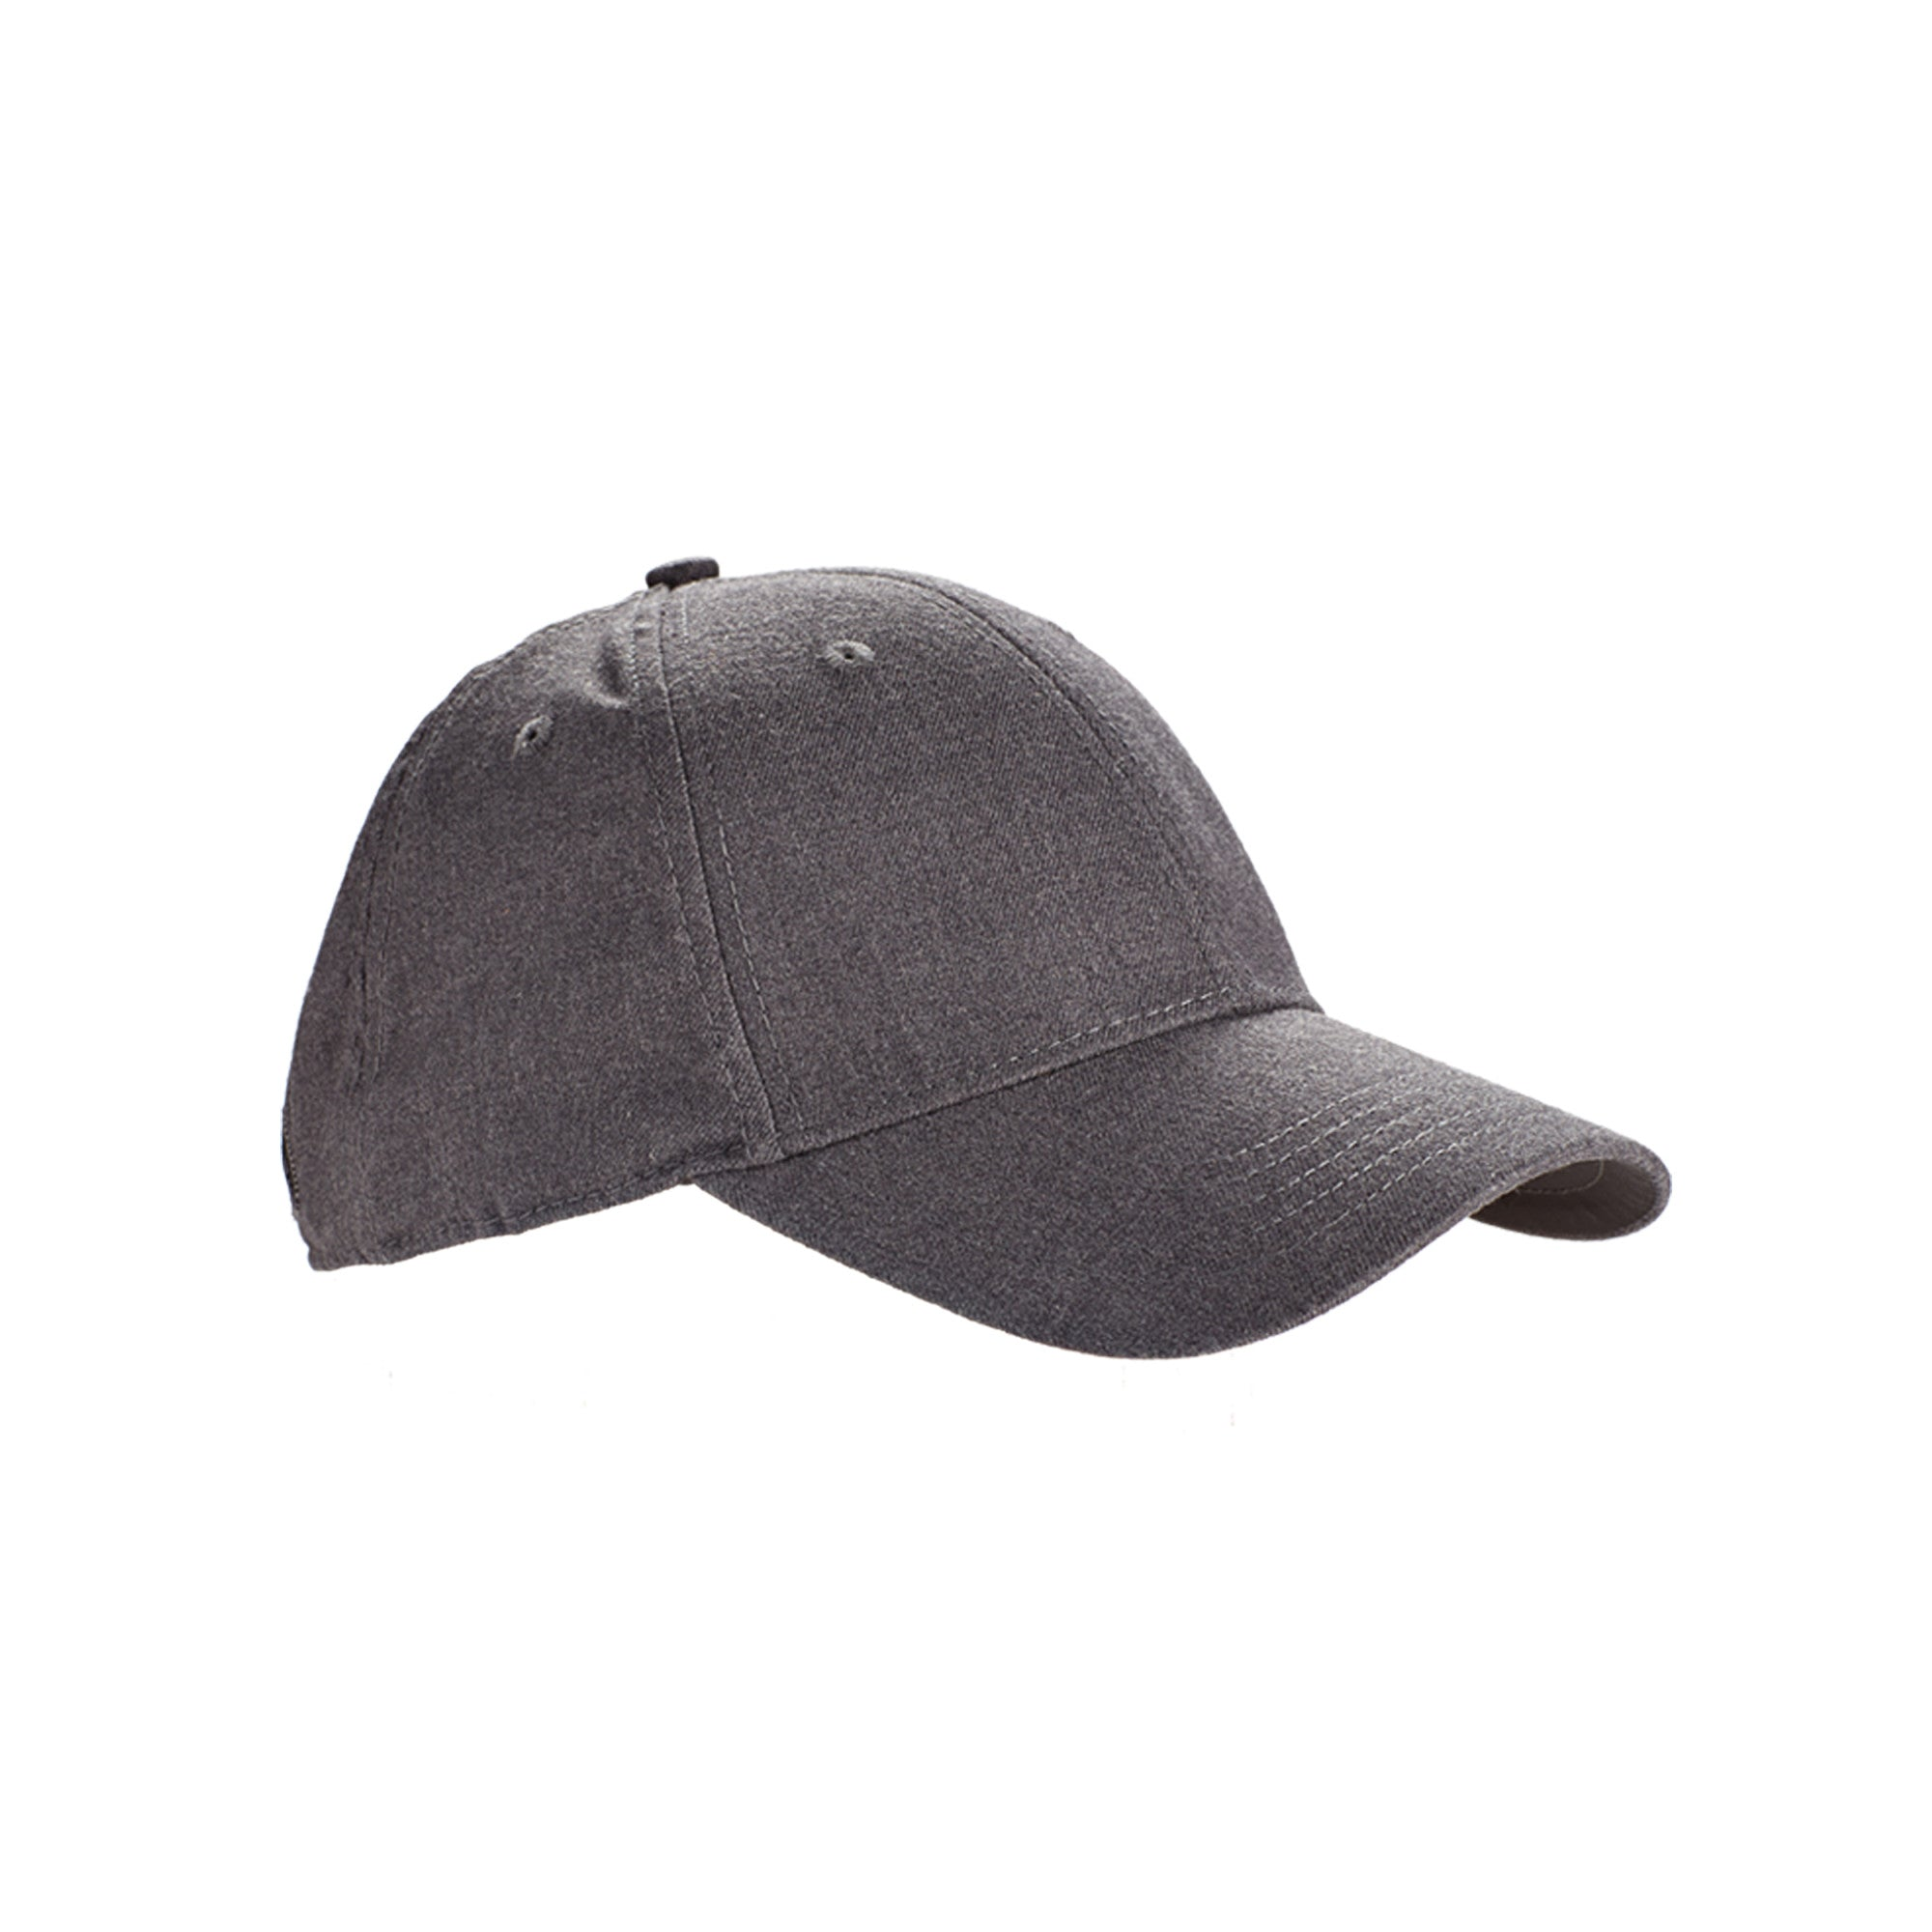 Antigua Men's Encore Cap Graphite Heather